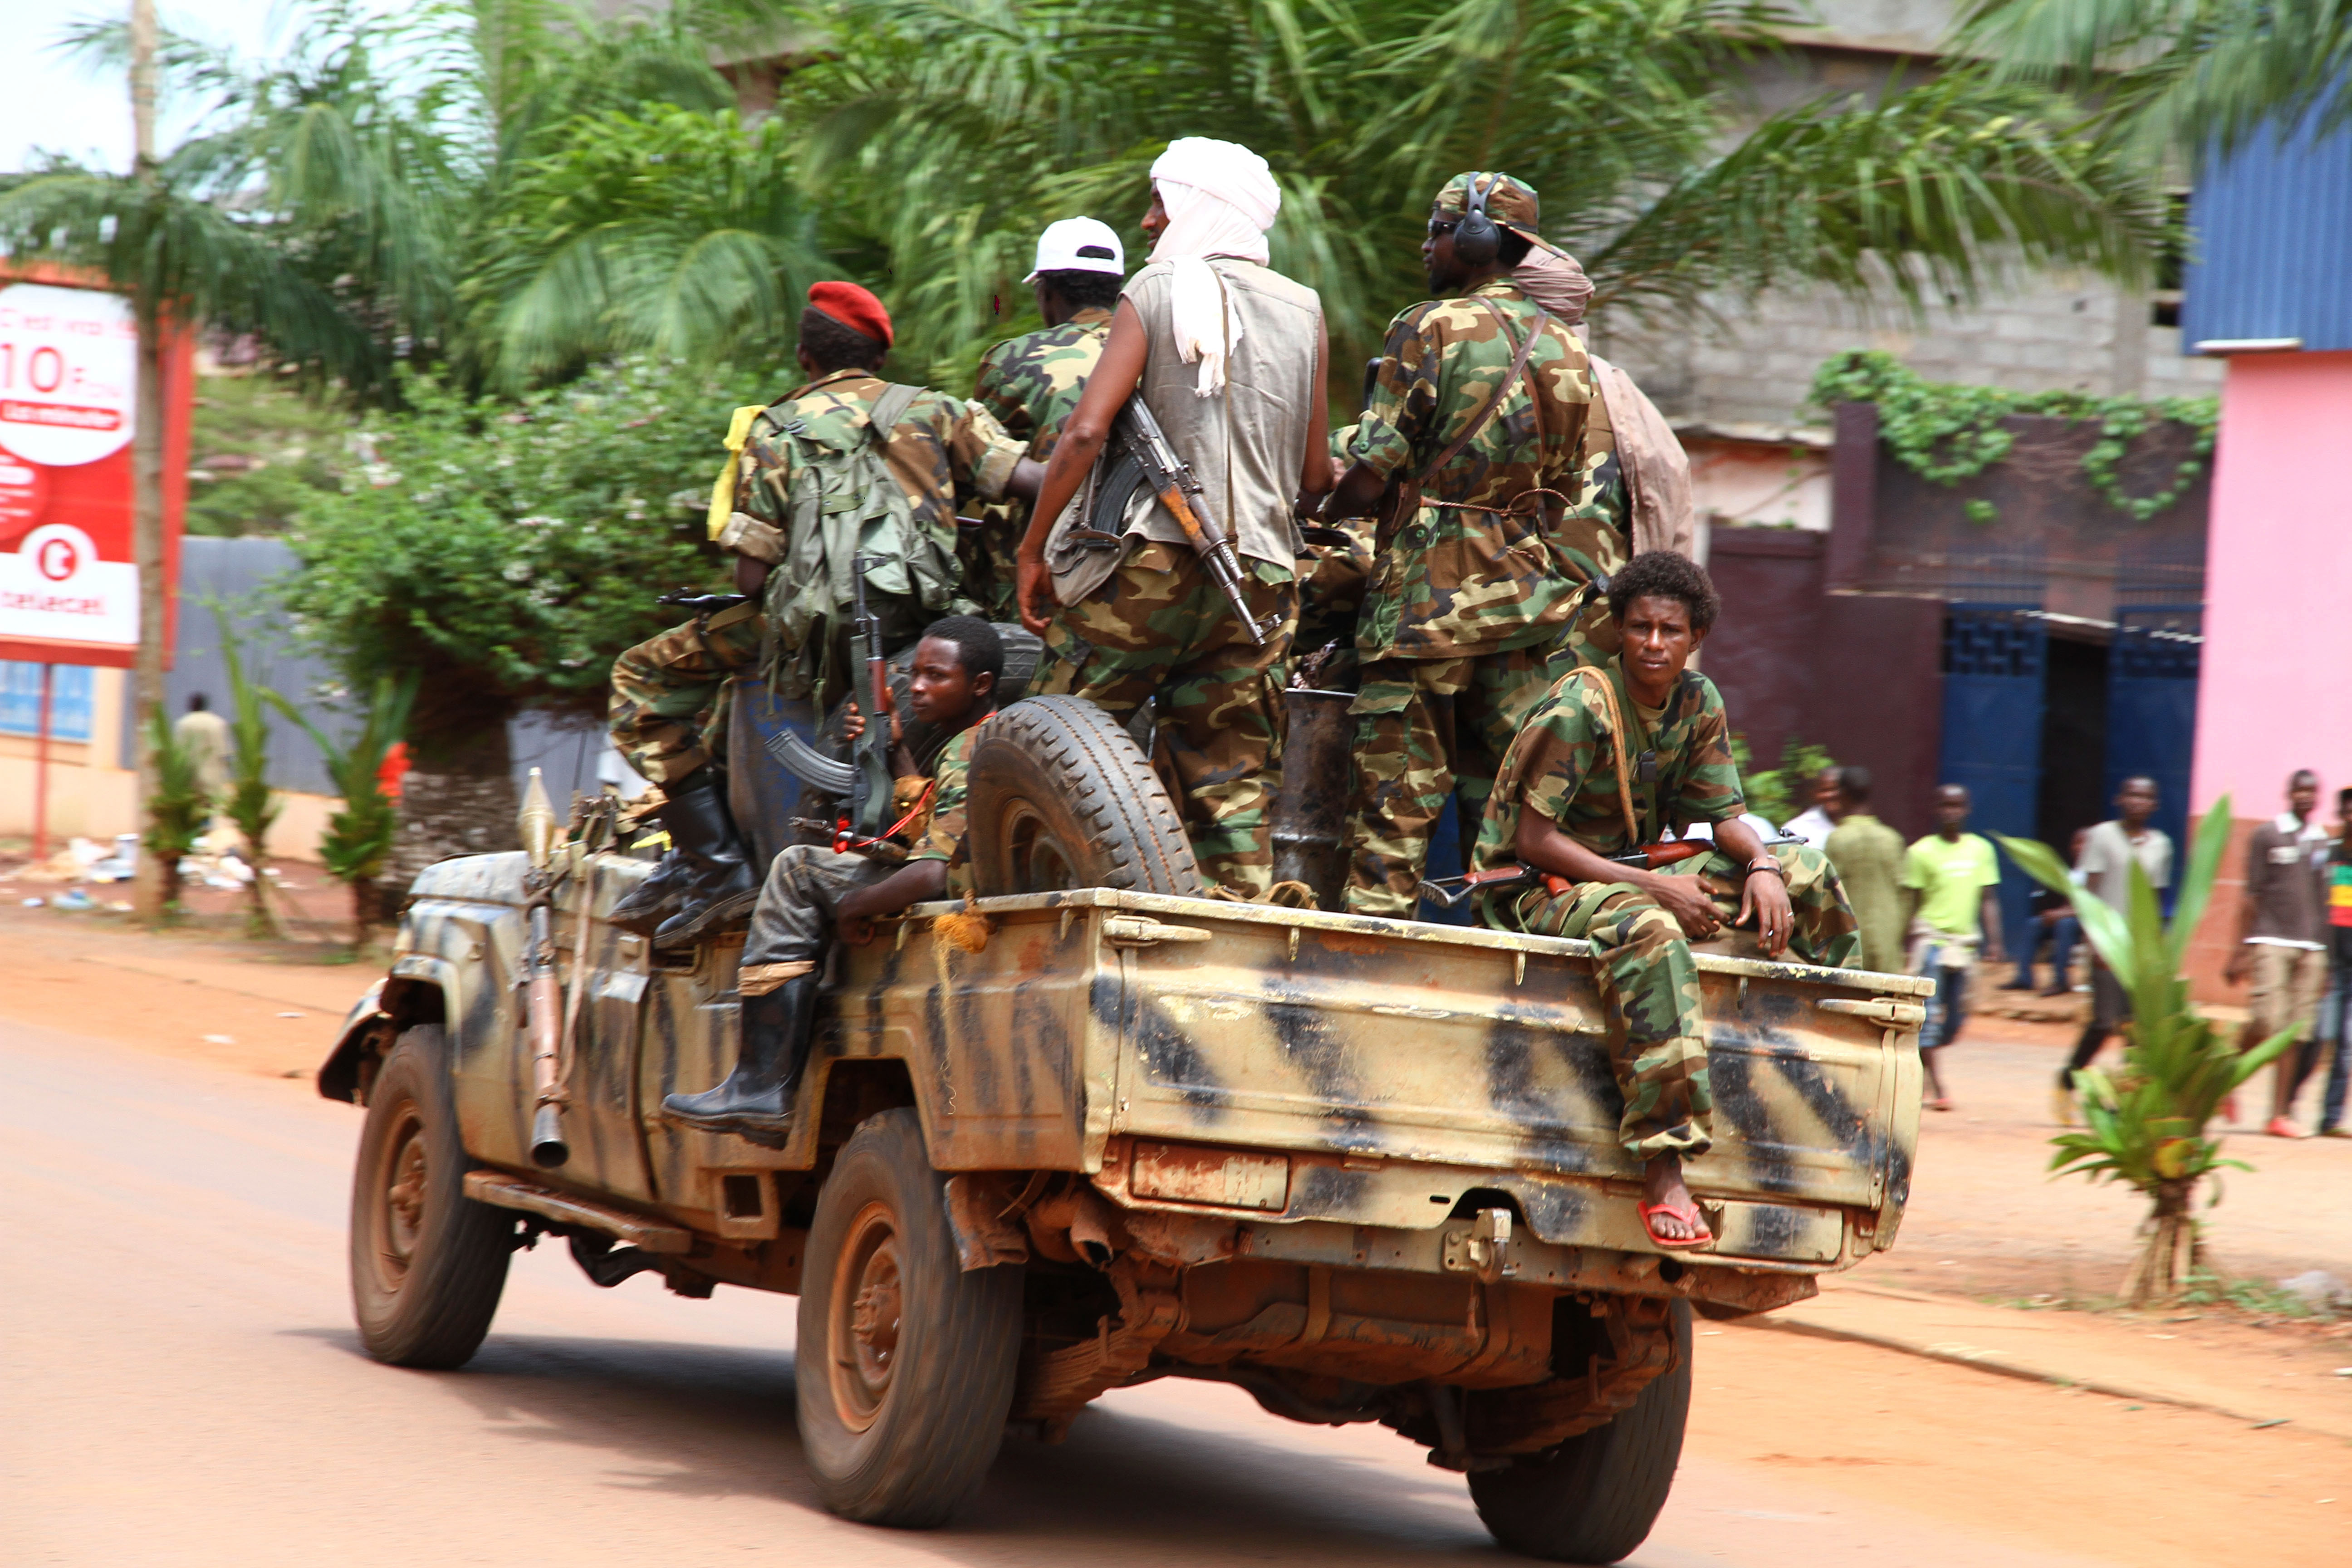 Rights Groups Urge for Swift International Action to Protect Civilians in the Central African Republic